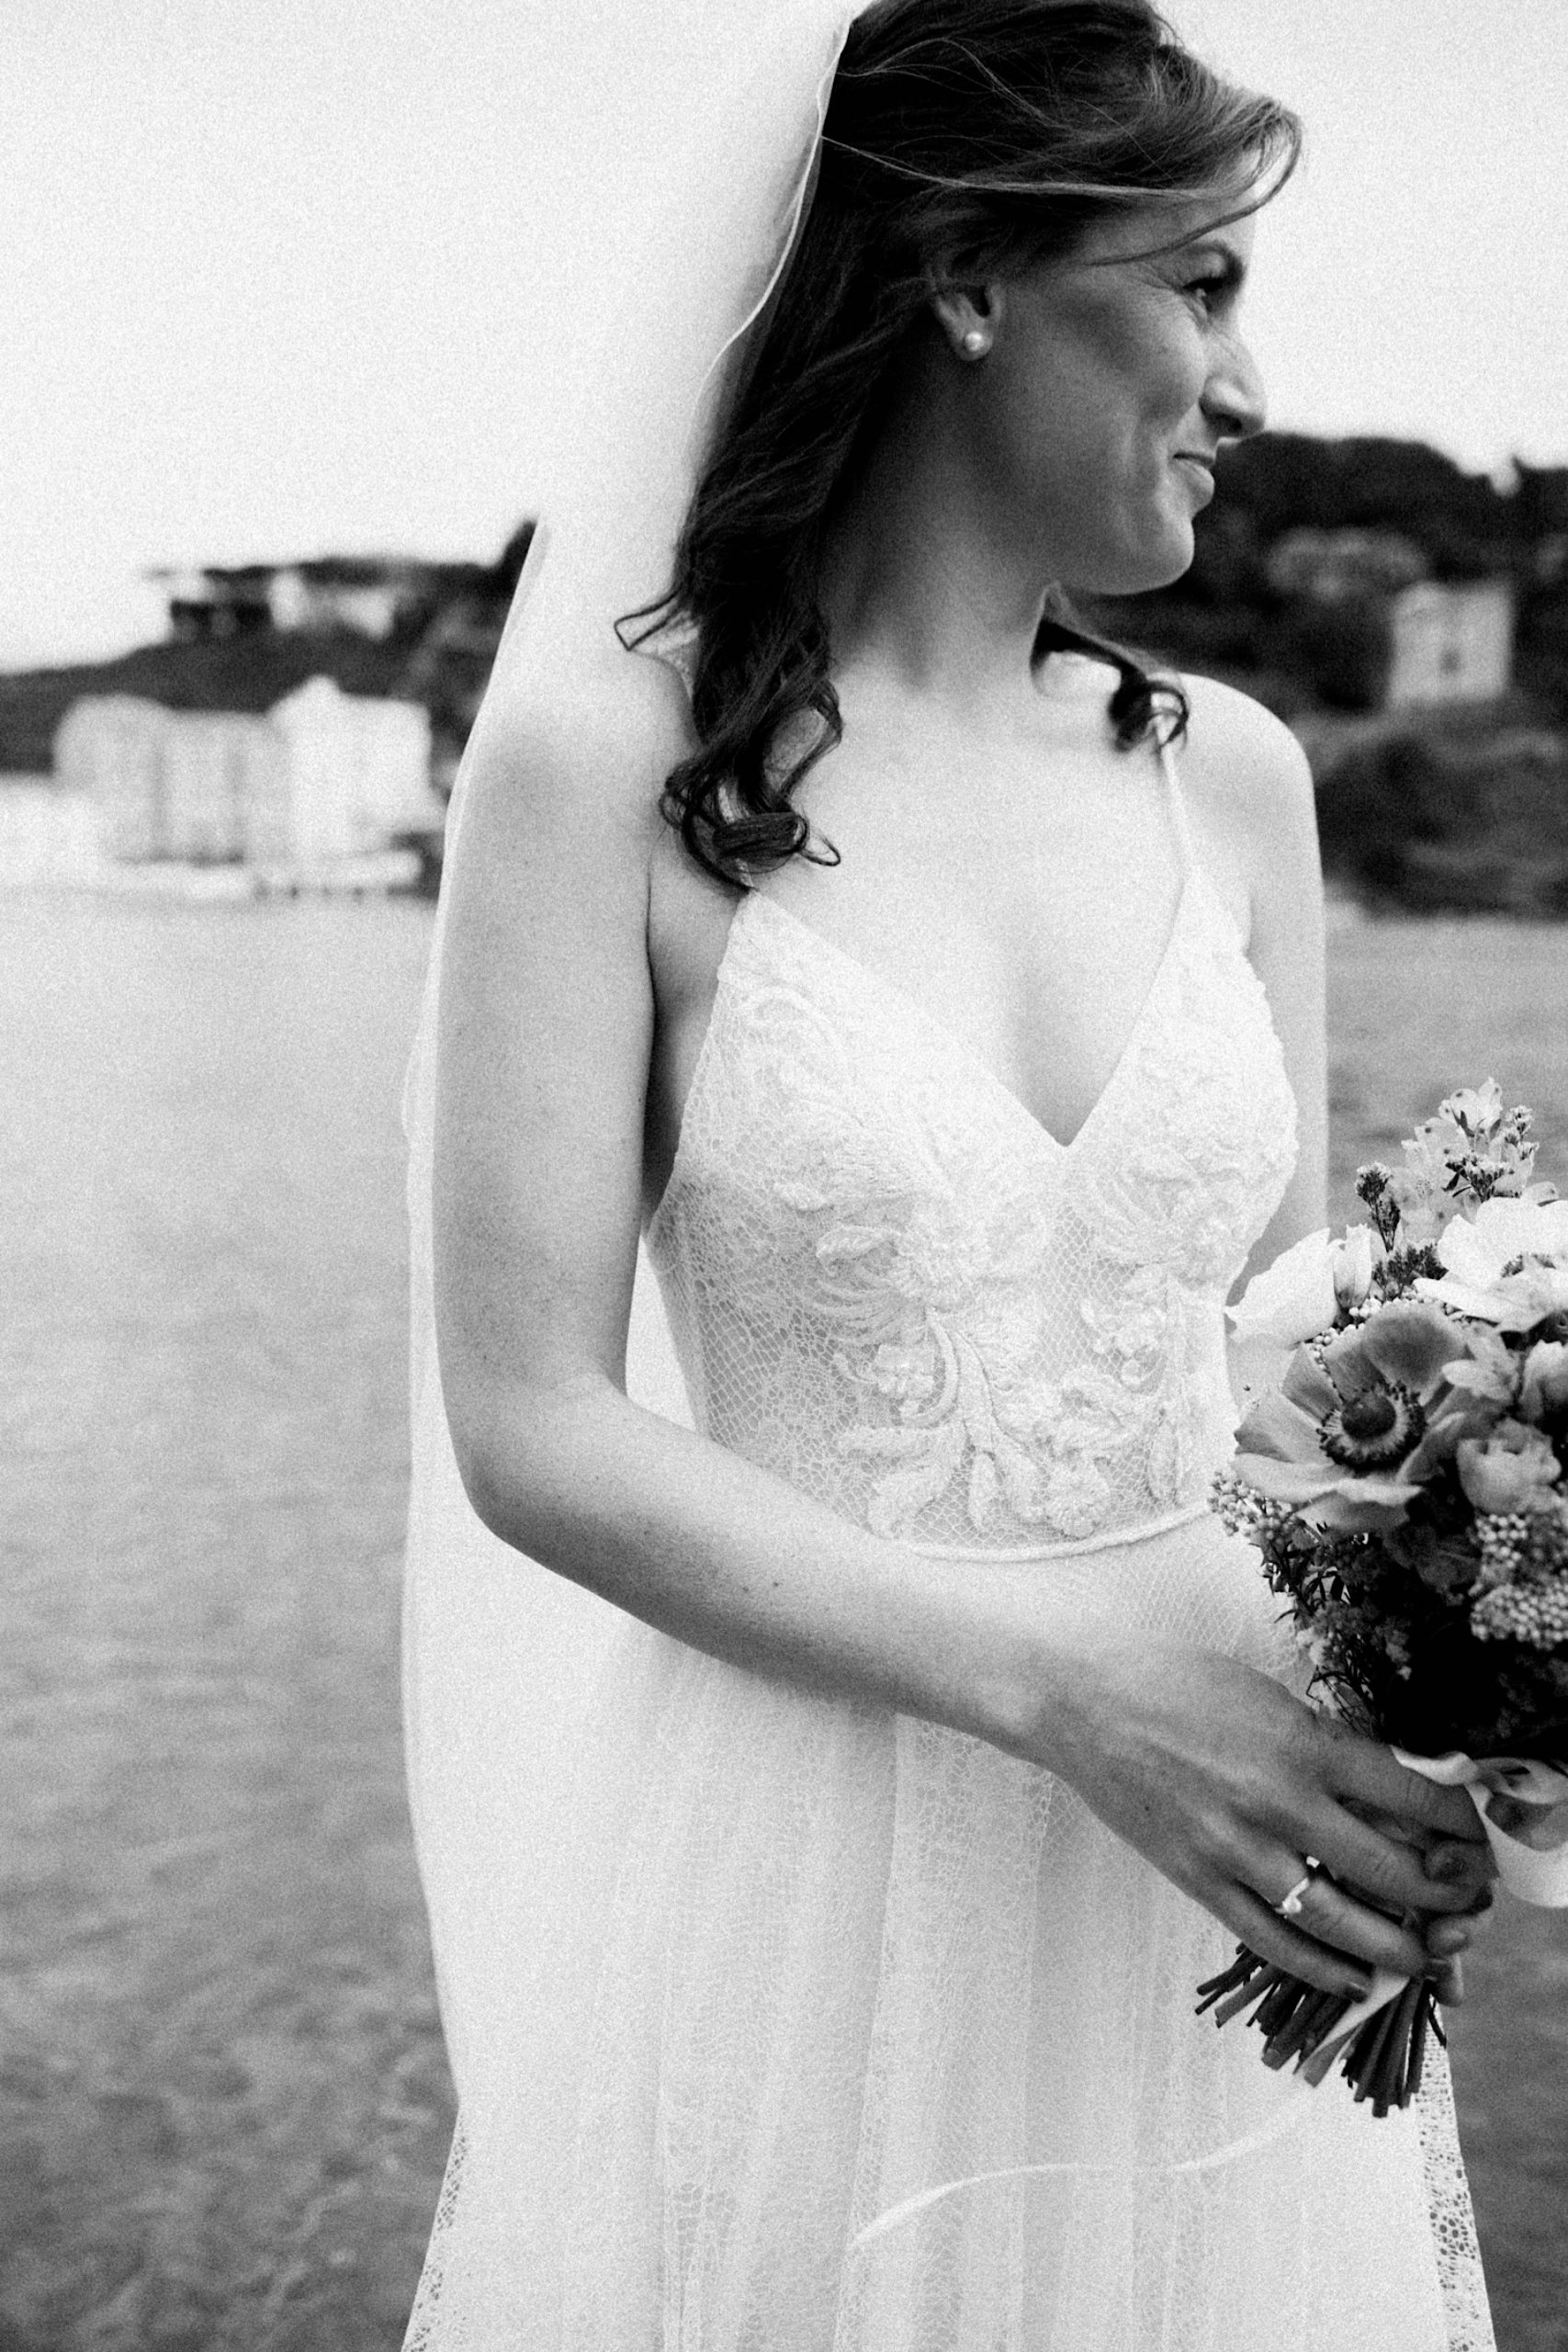 A black & white Destination Wedding of a bride holding her bouquet at the Bay of Silence in Sestri Levante on the Italian Riviera.